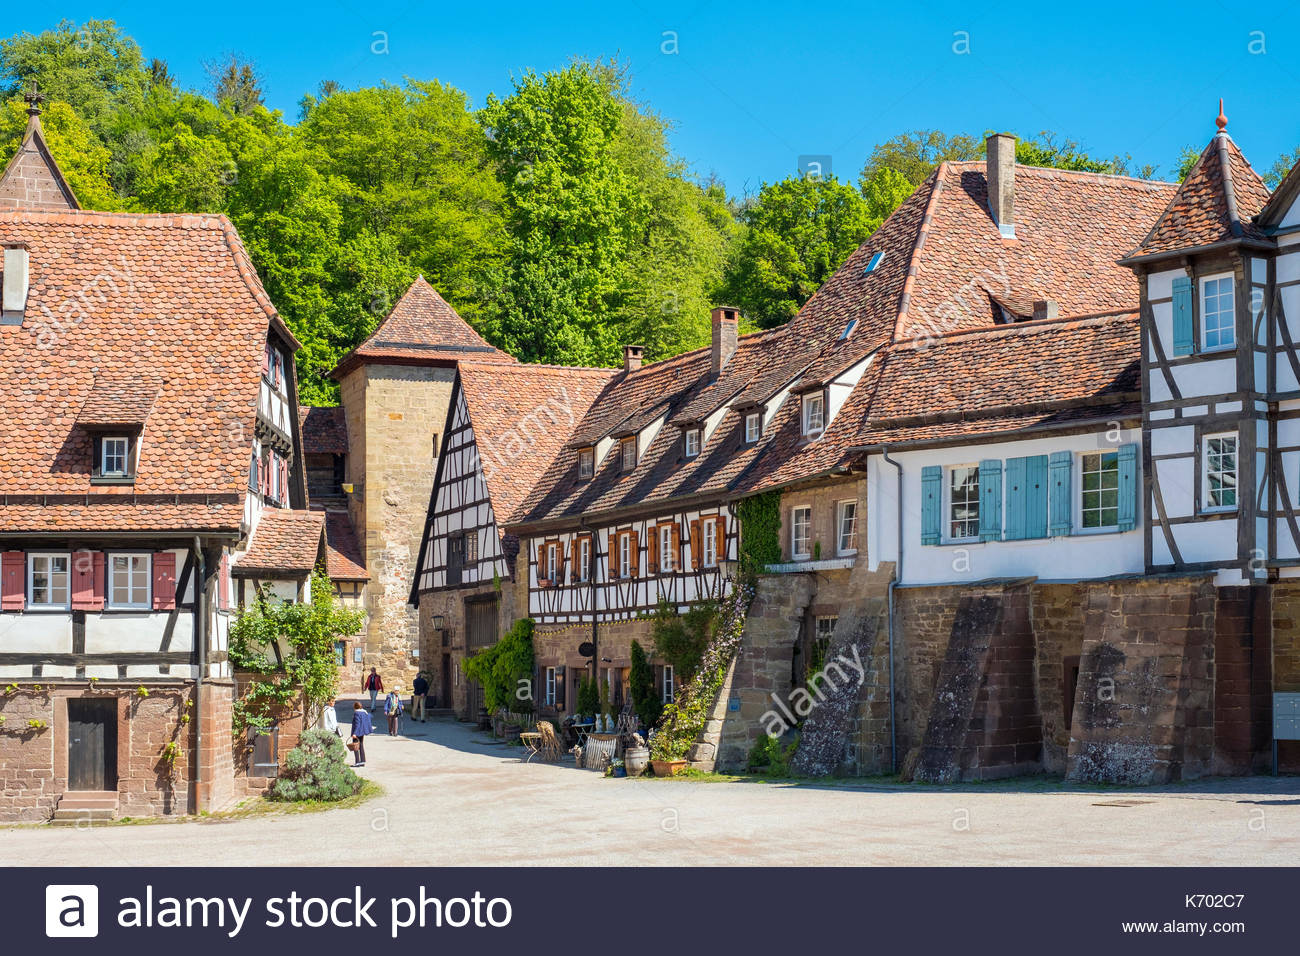 Germany, Baden-Württemberg, Maulbronn. Historic half-timber buildings in the monastery village. - Stock Image